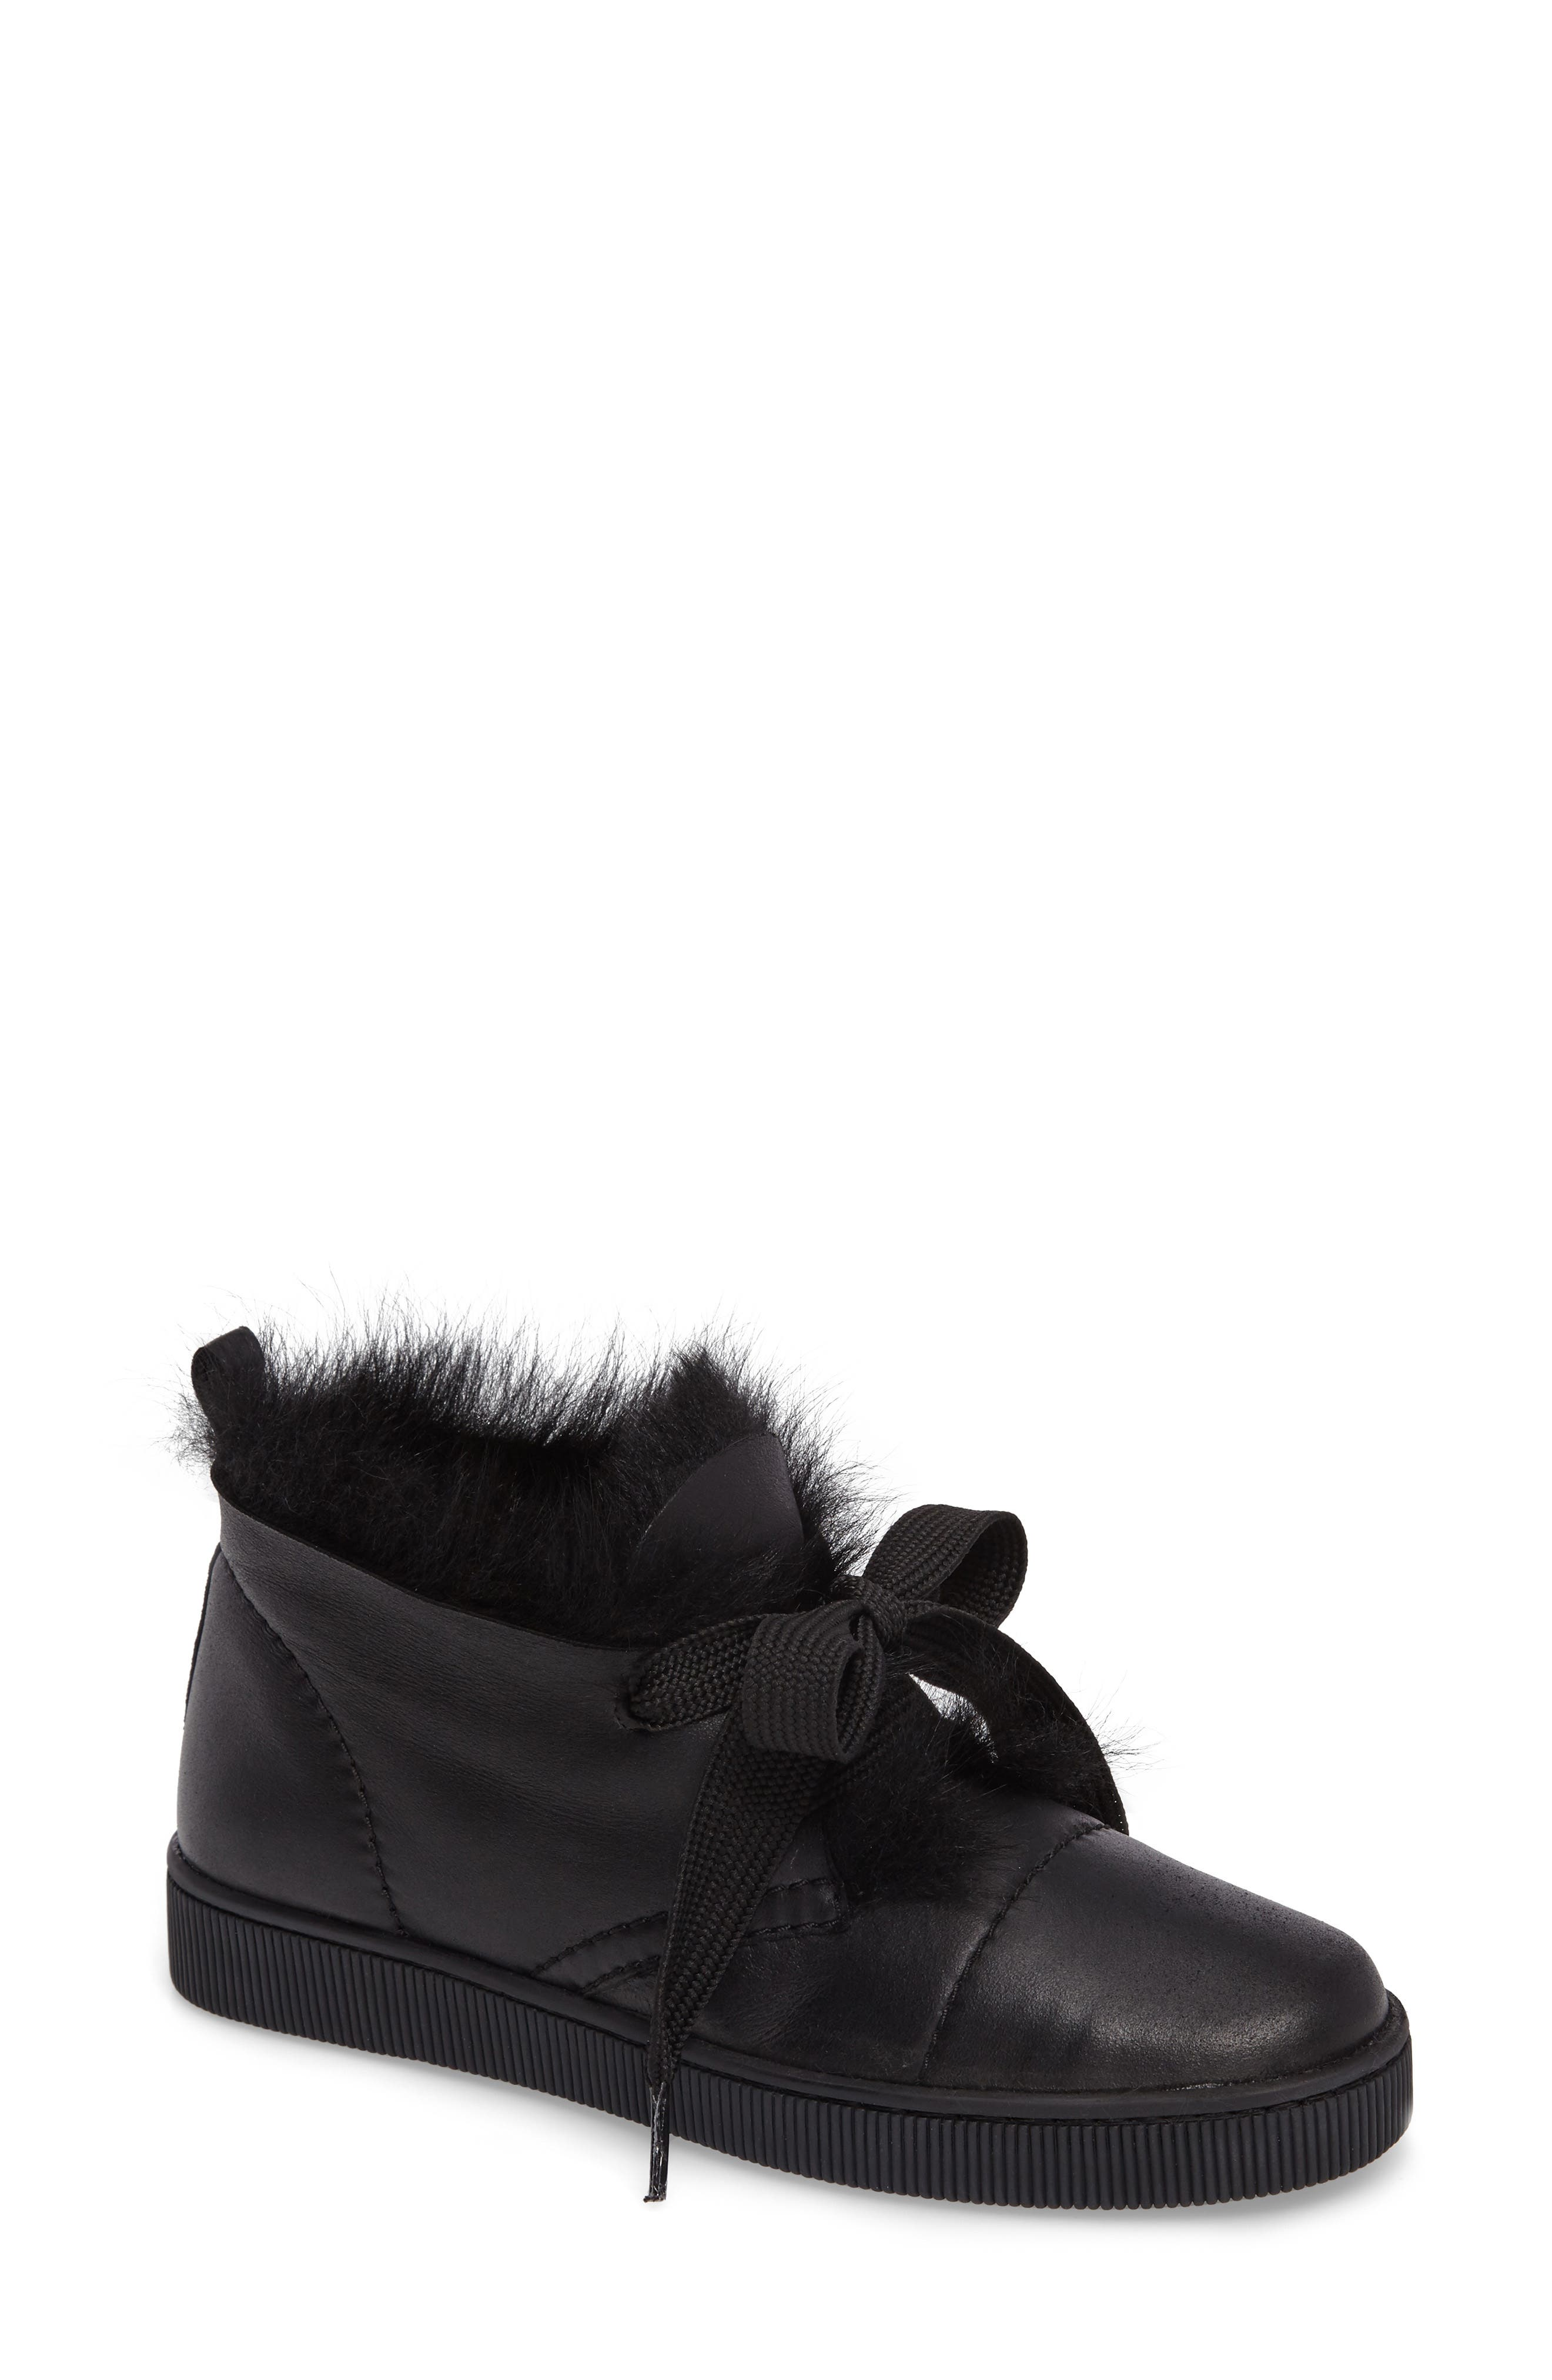 Main Image - Pedro Garcia Parley Genuine Shearling & Leather Sneaker (Women)